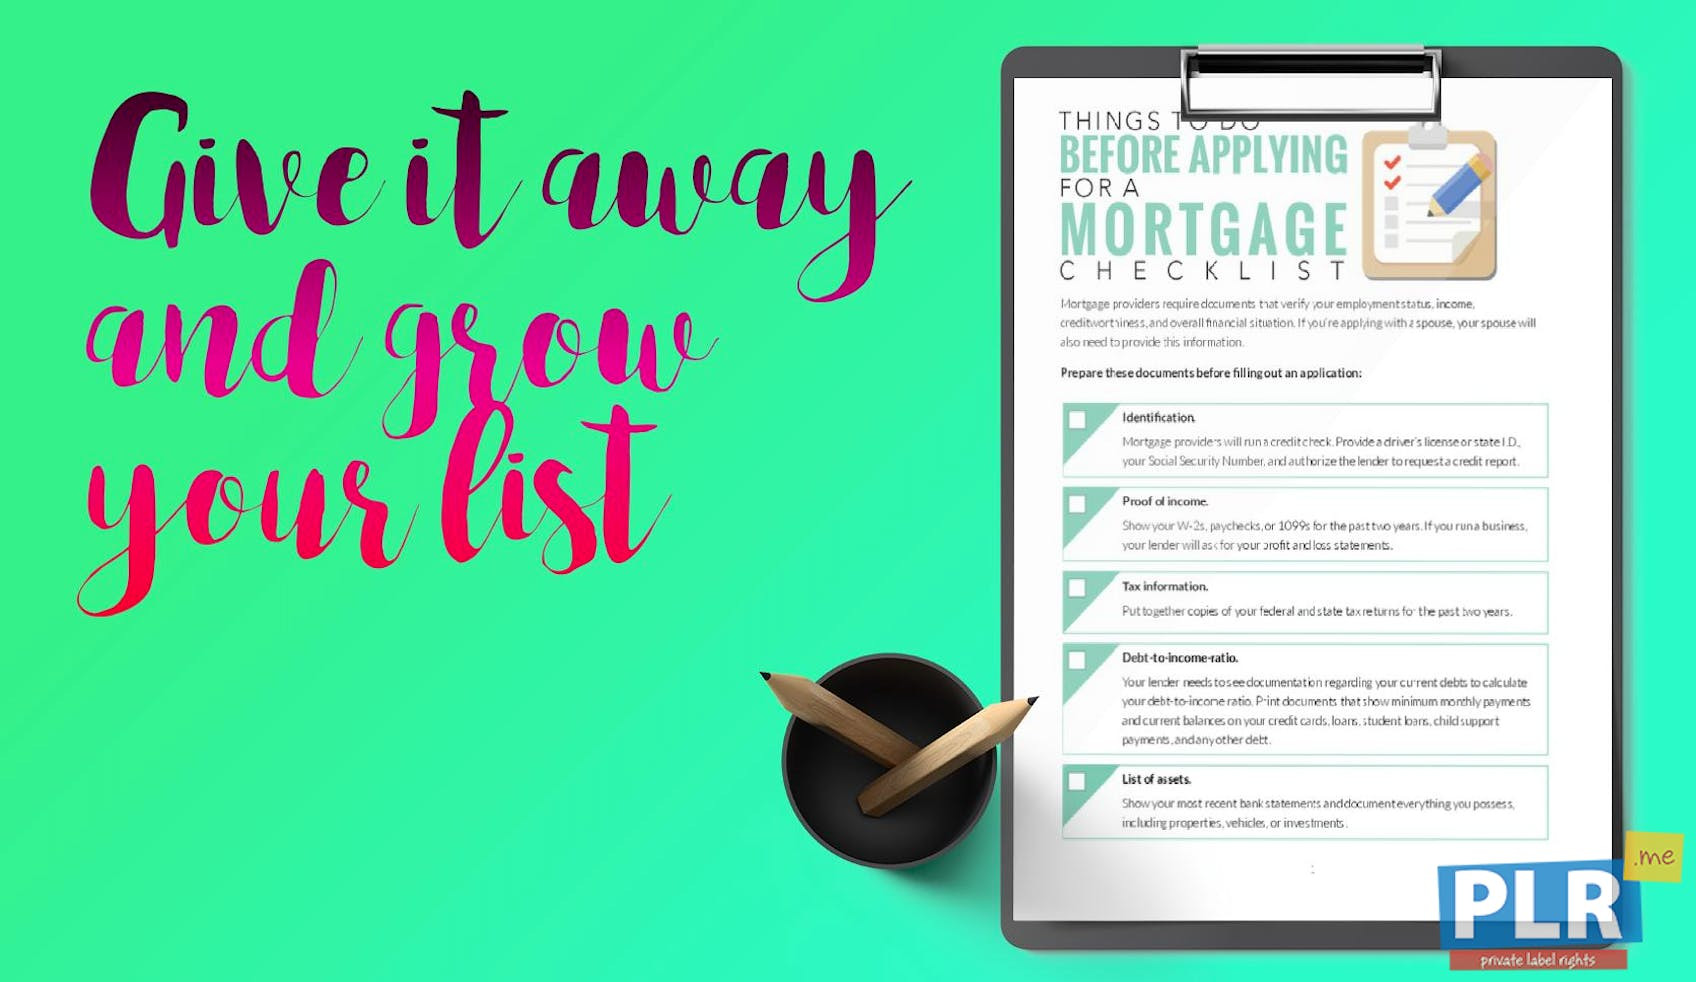 Things To Do Before Applying For A Mortgage Checklist